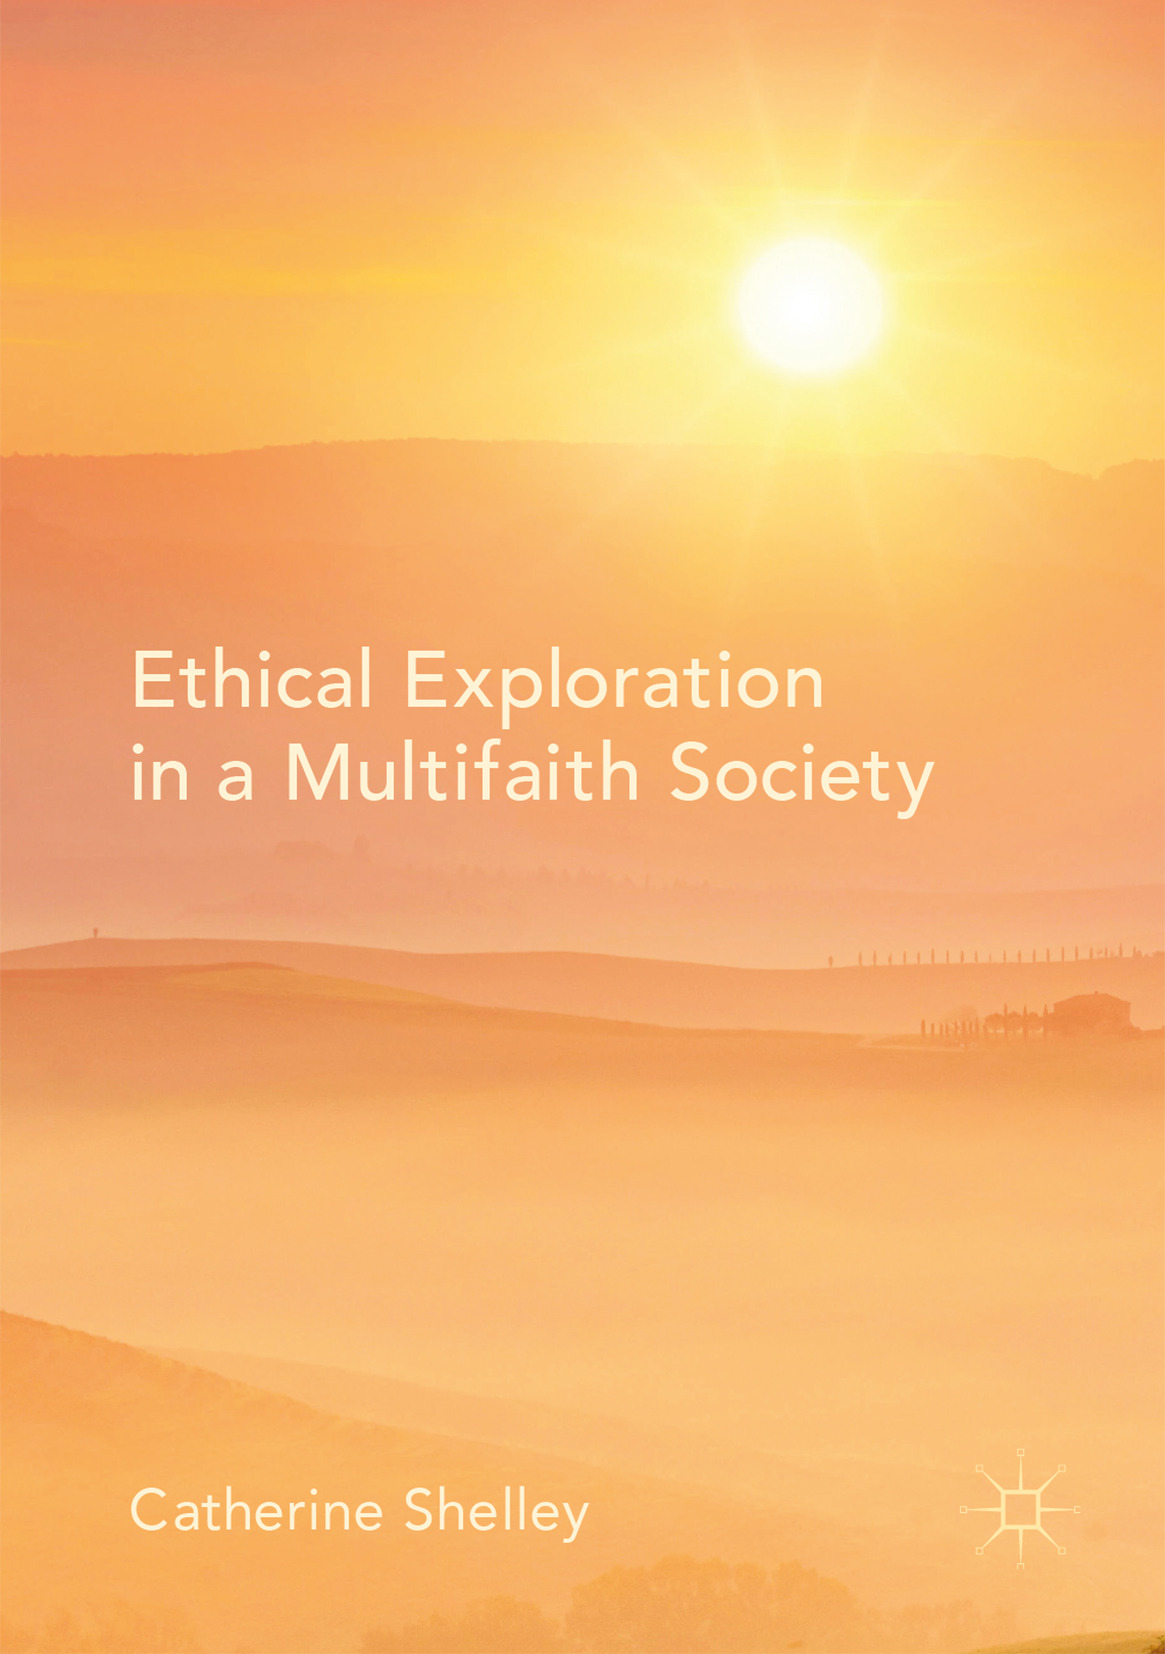 Shelley, Catherine - Ethical Exploration in a Multifaith Society, ebook